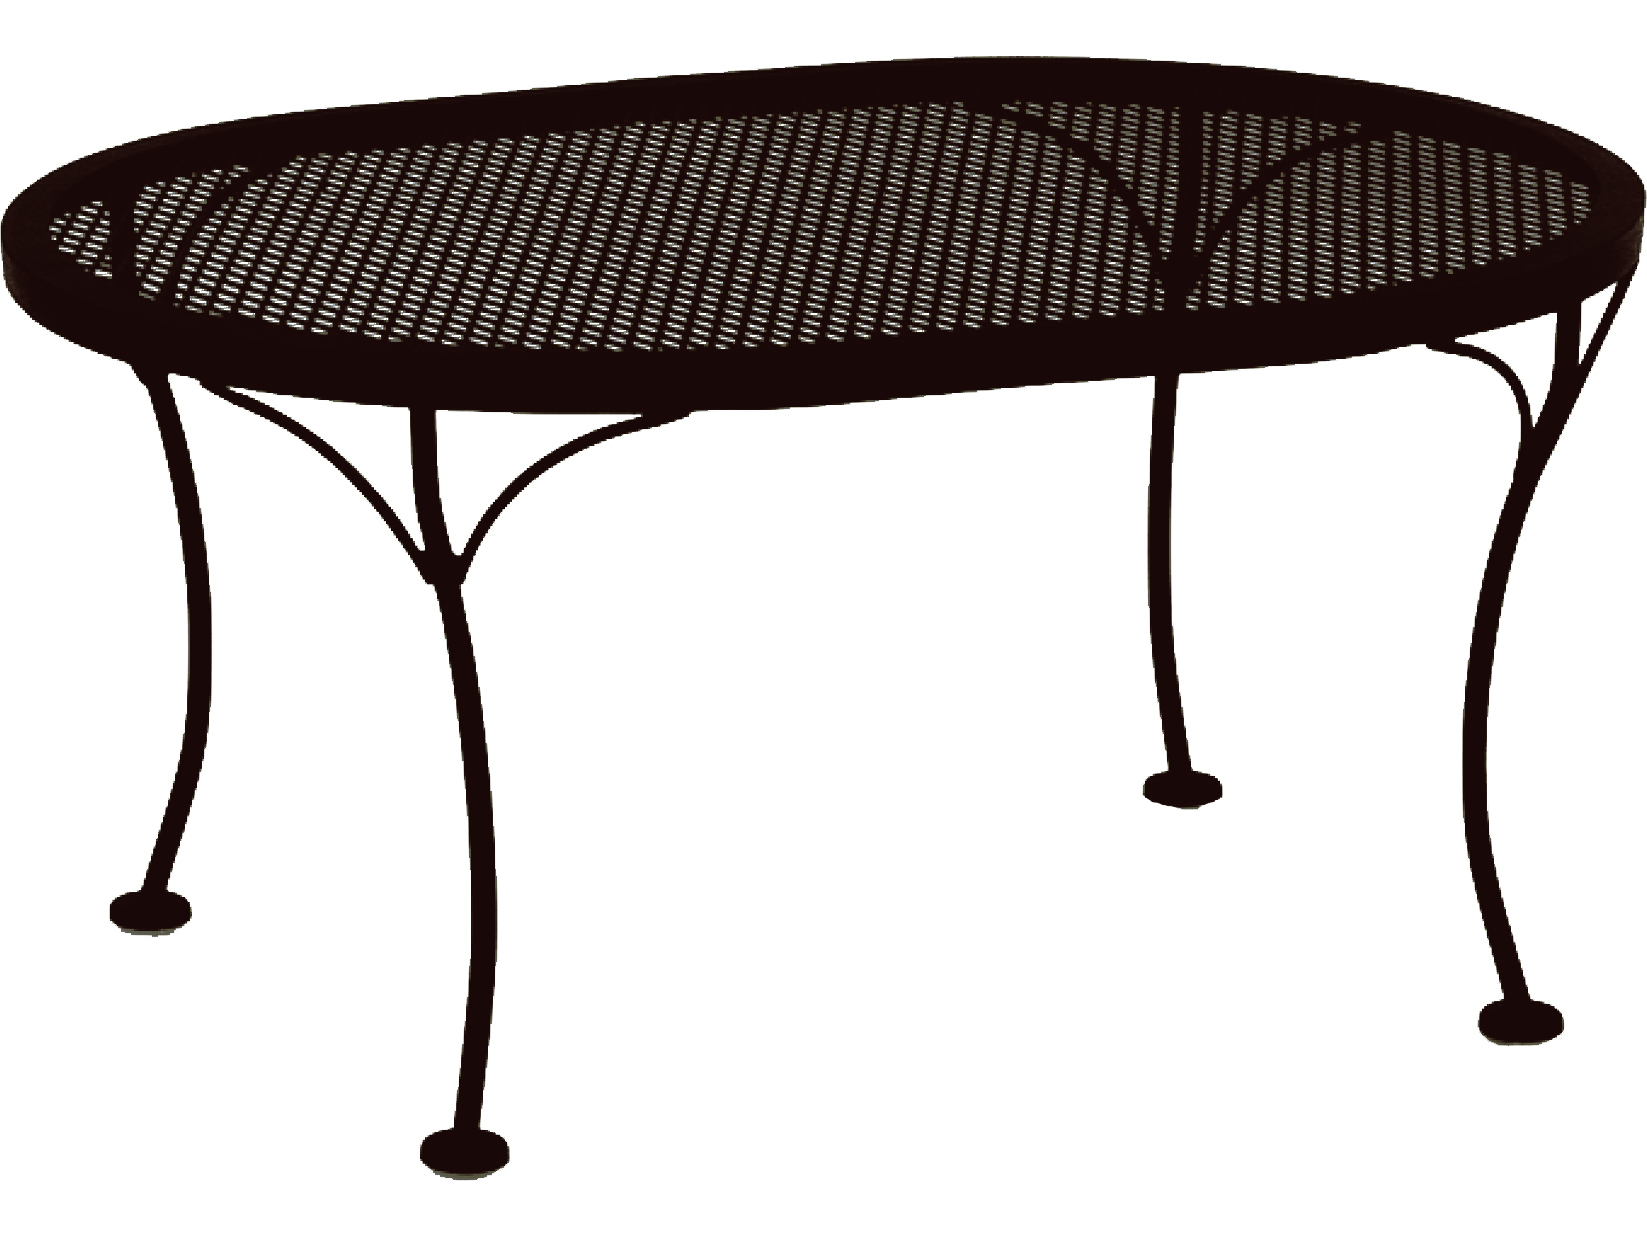 Ow Lee Micro Mesh Wrought Iron 34 X 24 Oval Coffee Table